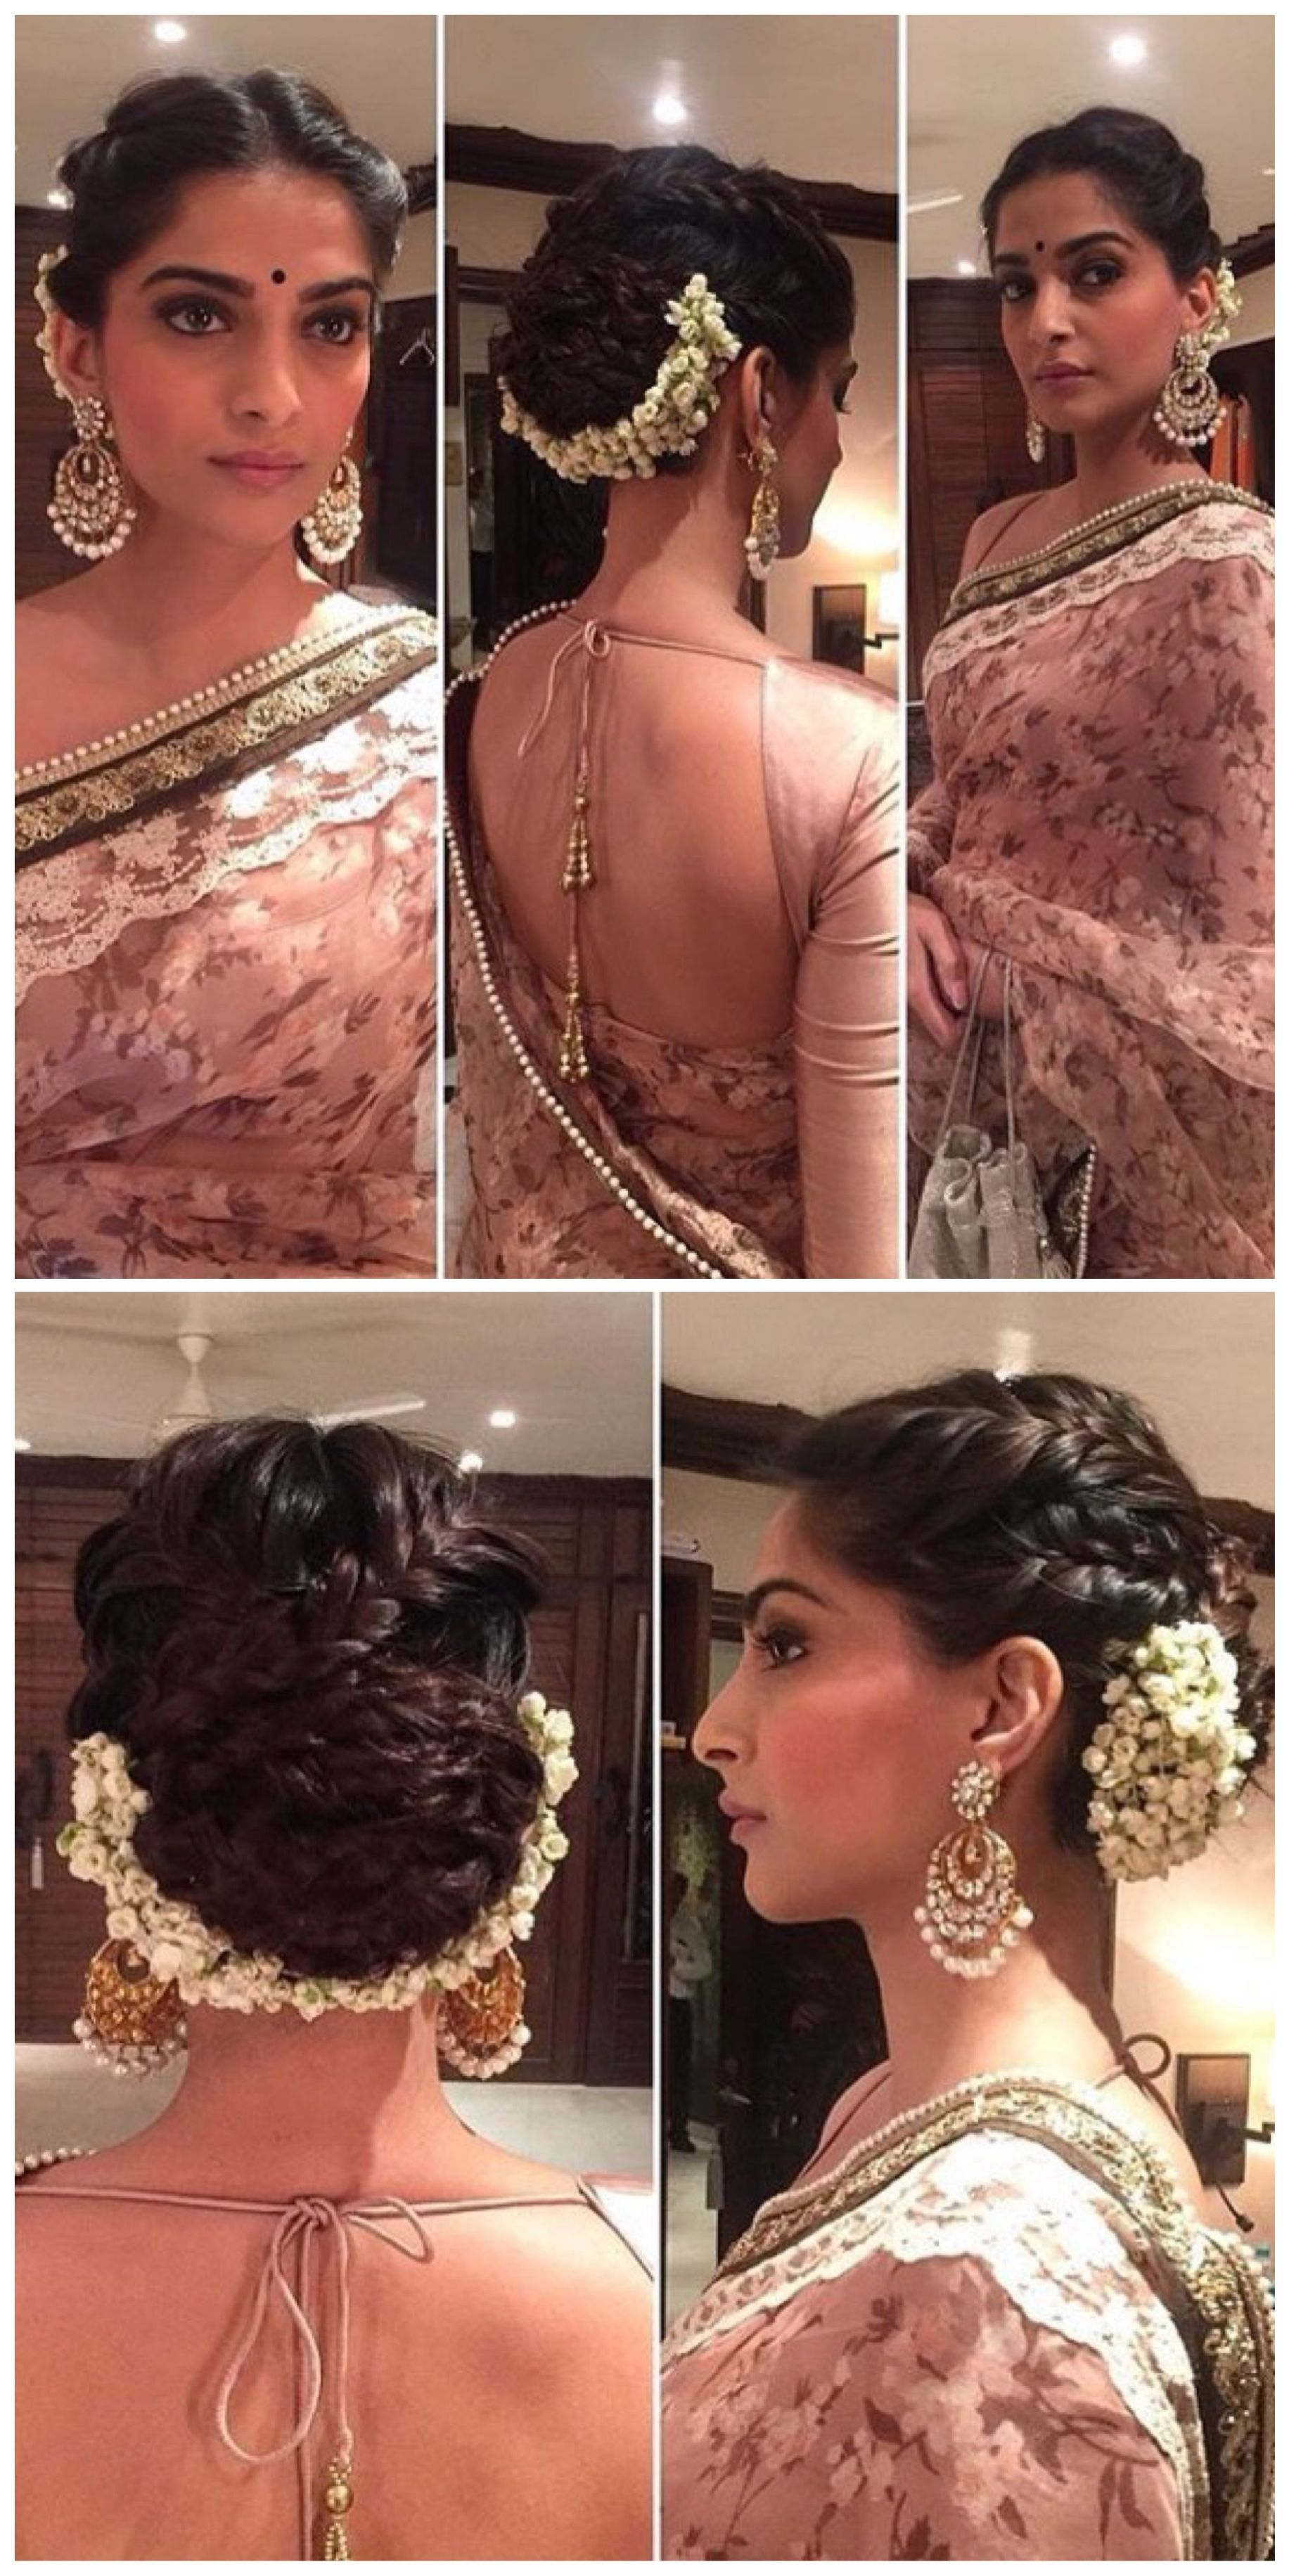 sonam kapoor's hairstyle is on fleek for a wedding. love the